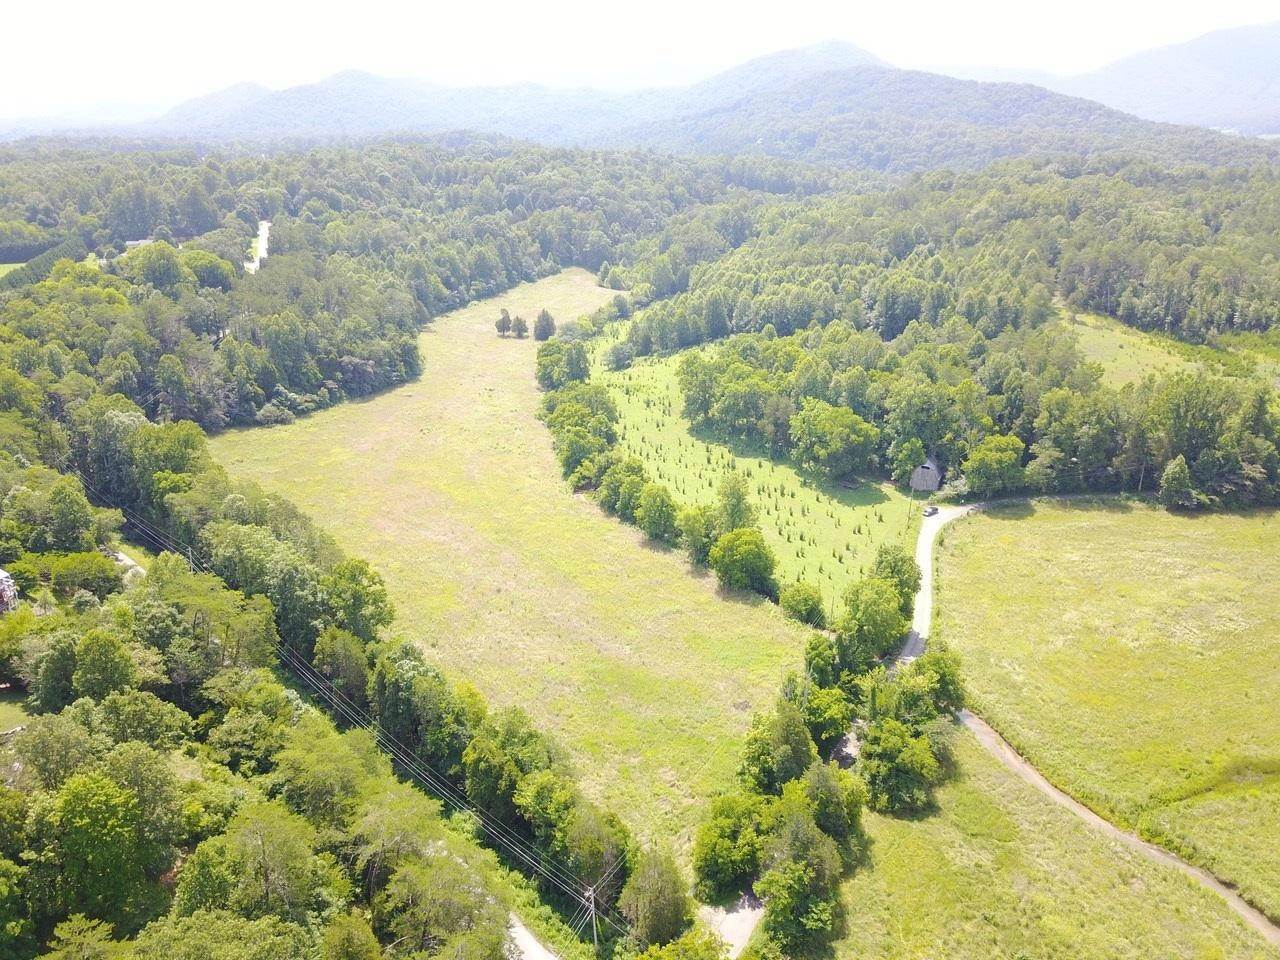 Land for Sale at Old Tuckaleechee Road Townsend, Tennessee 37882 United States